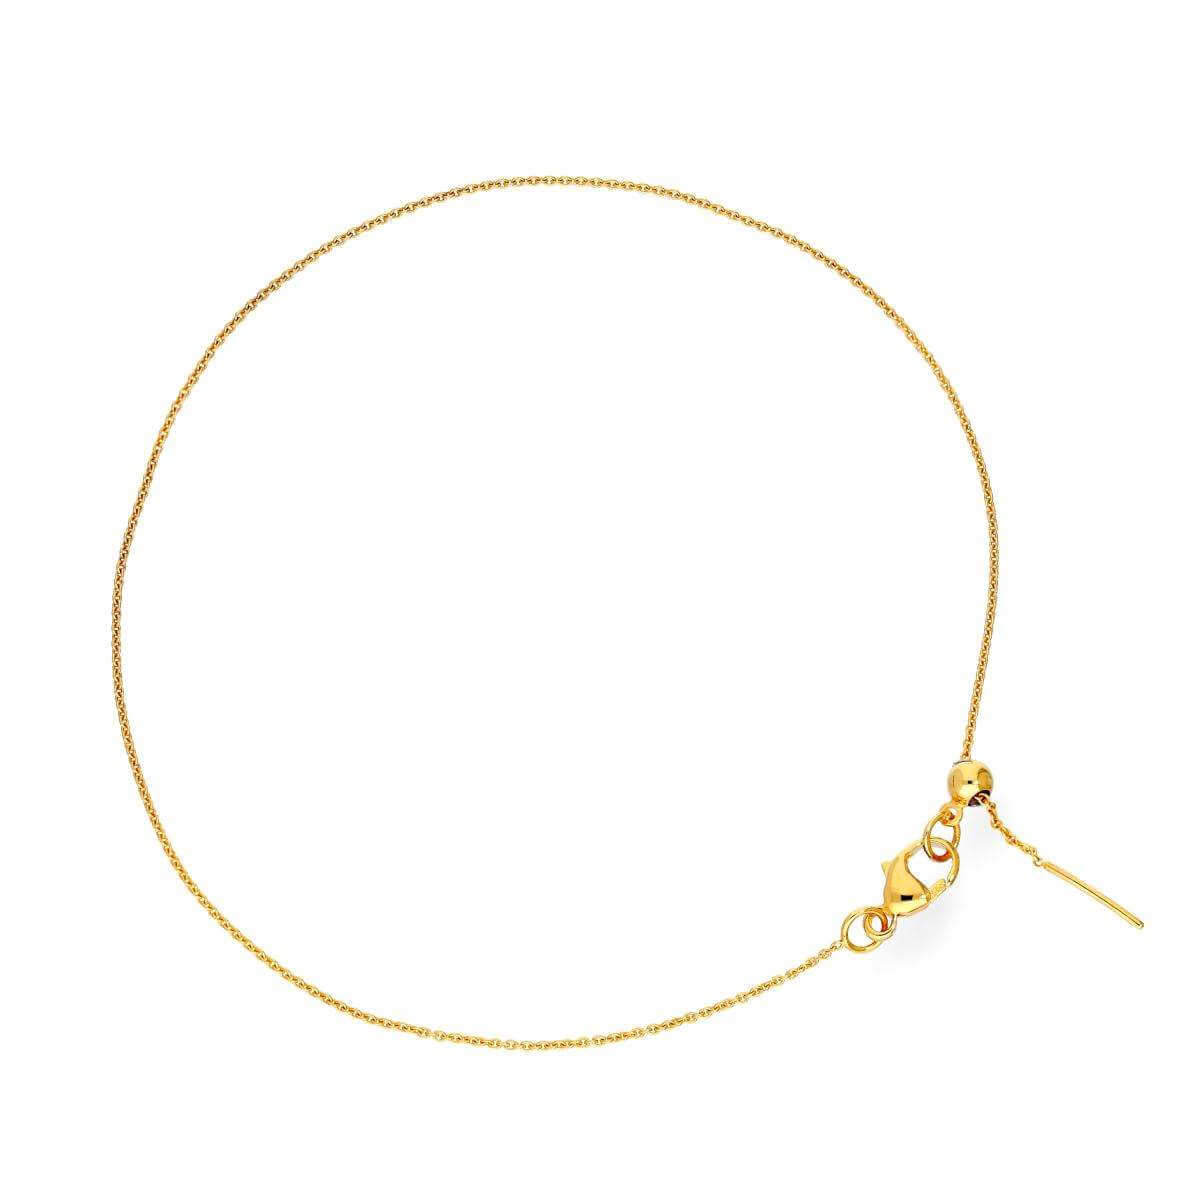 9ct Gold Adjustable 7.5 Inch Bracelet